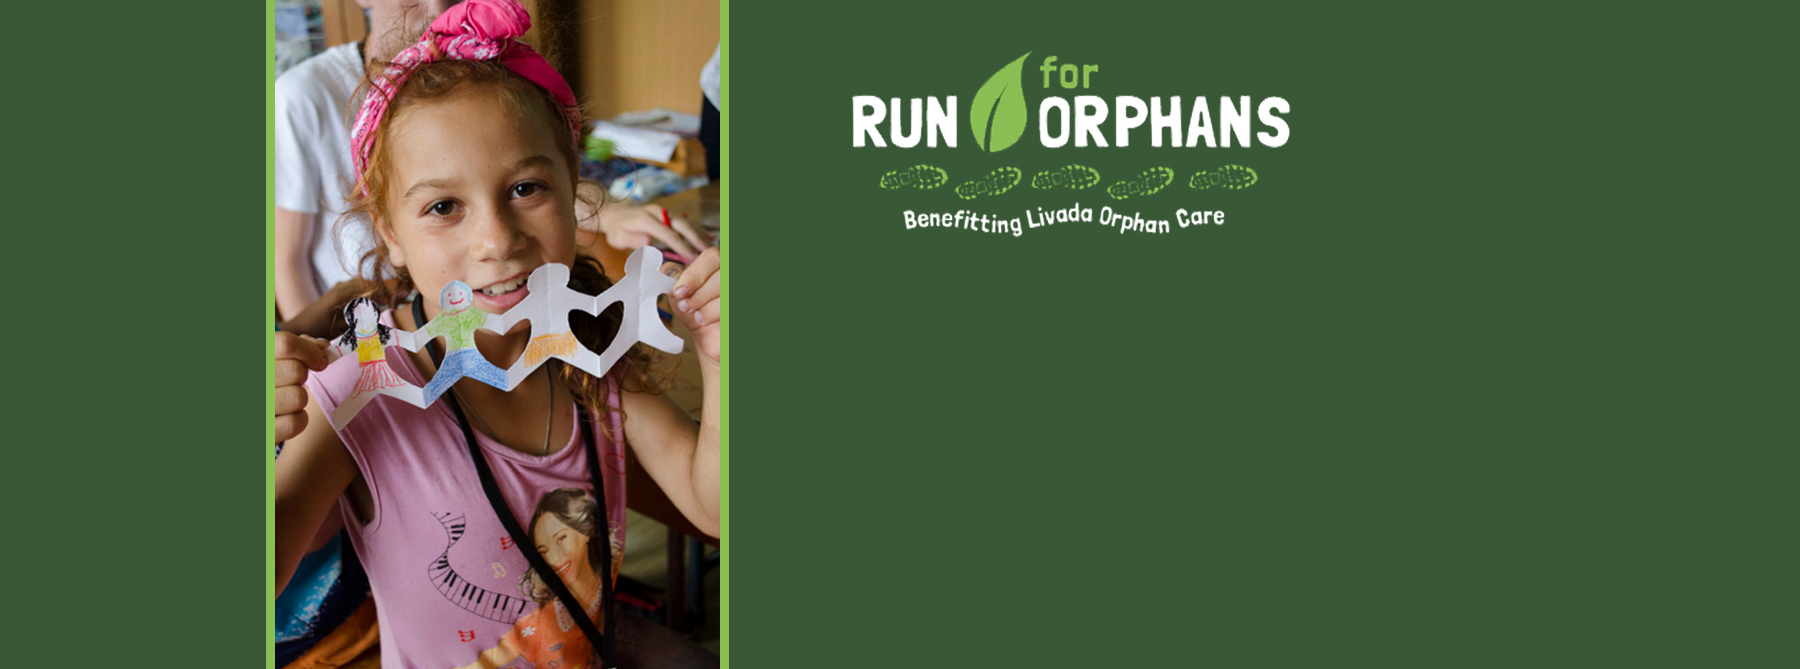 Slider-Run-for-Orphans-3-1